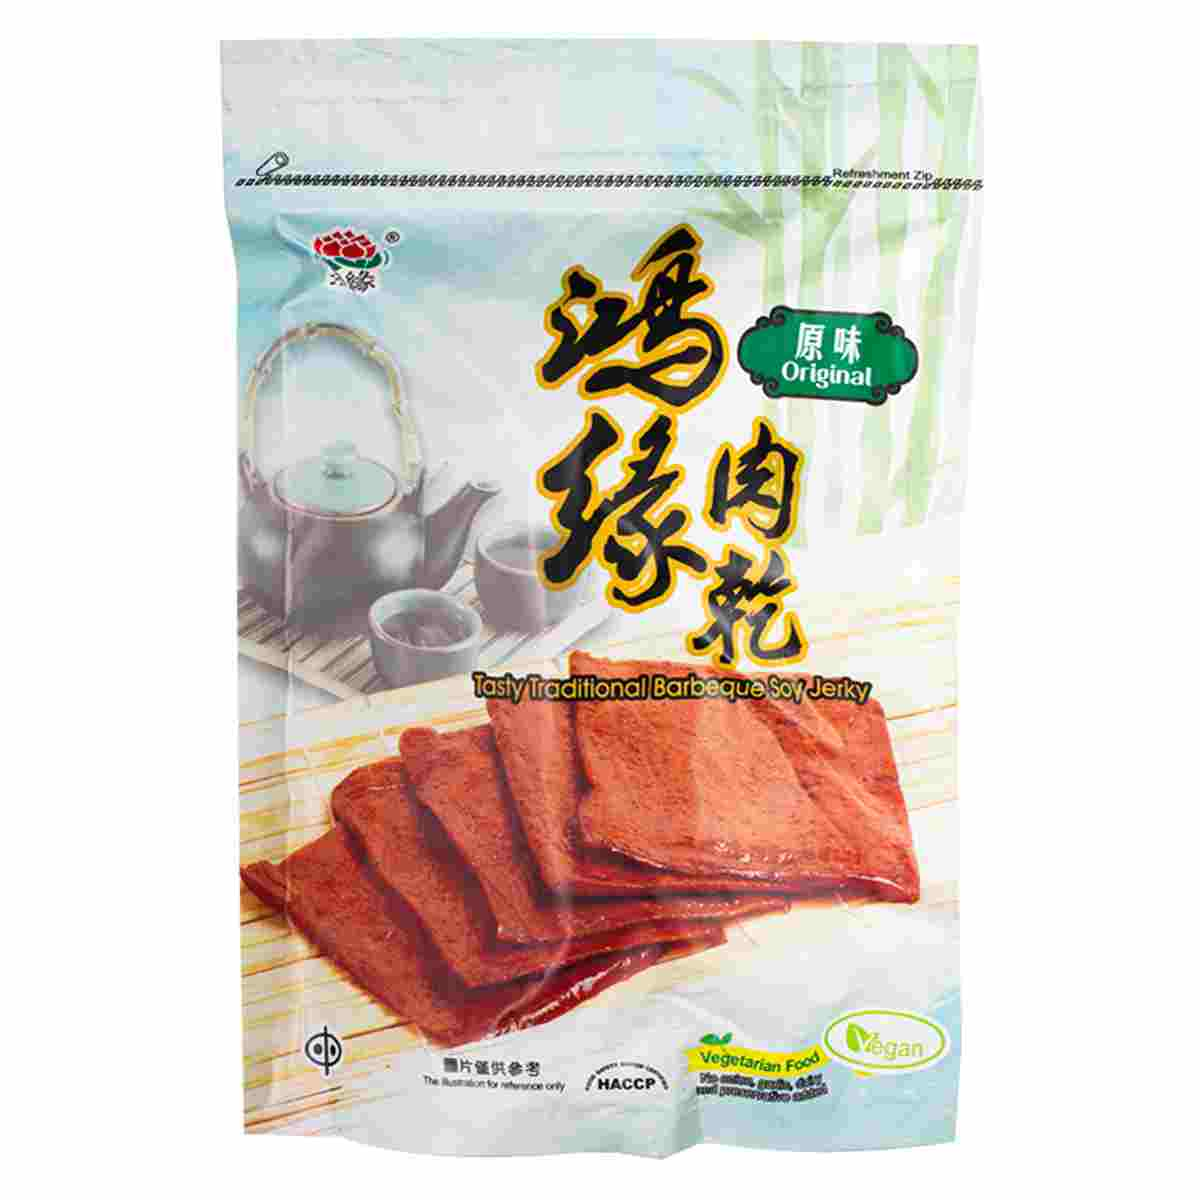 Image BBQ Soy Jerky 鸿缘 - 肉干(原)(10packets) 220grams